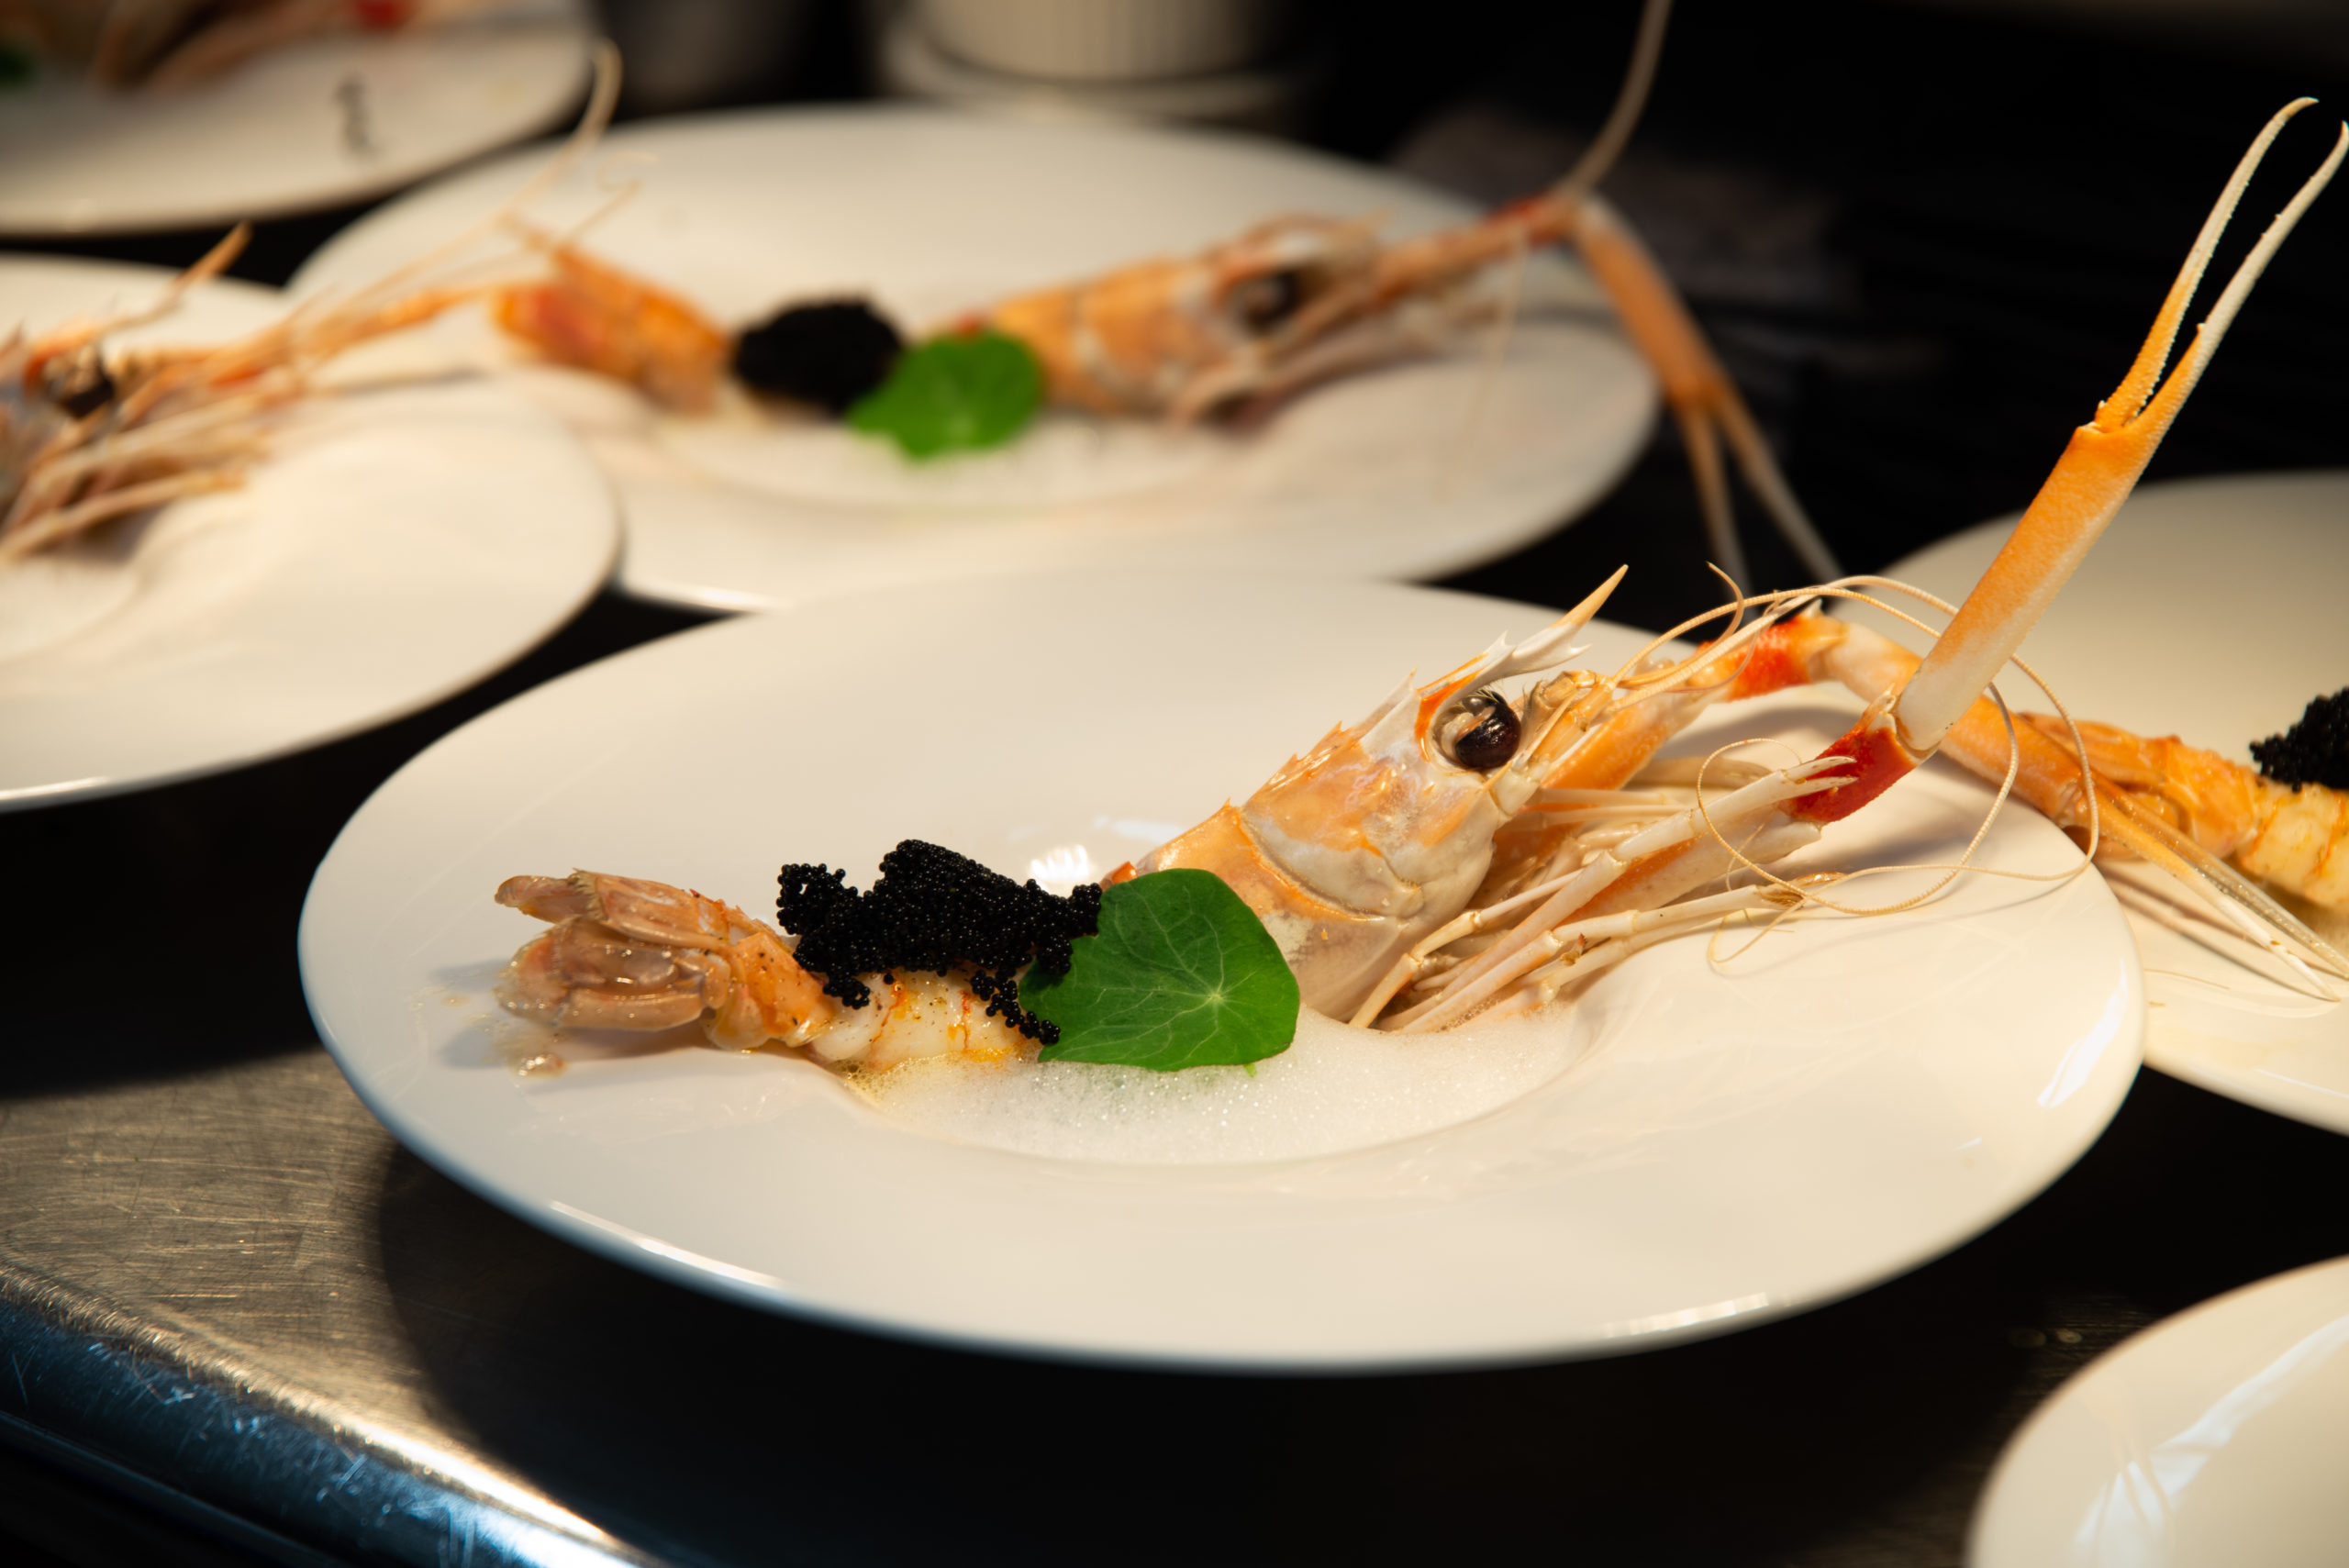 Cigalas, a dish featuring Norwegian prawns, fermented black beans and lemon air, as part of the R.AIRE dining experience at The Hampton Maid in Hampton Bays.